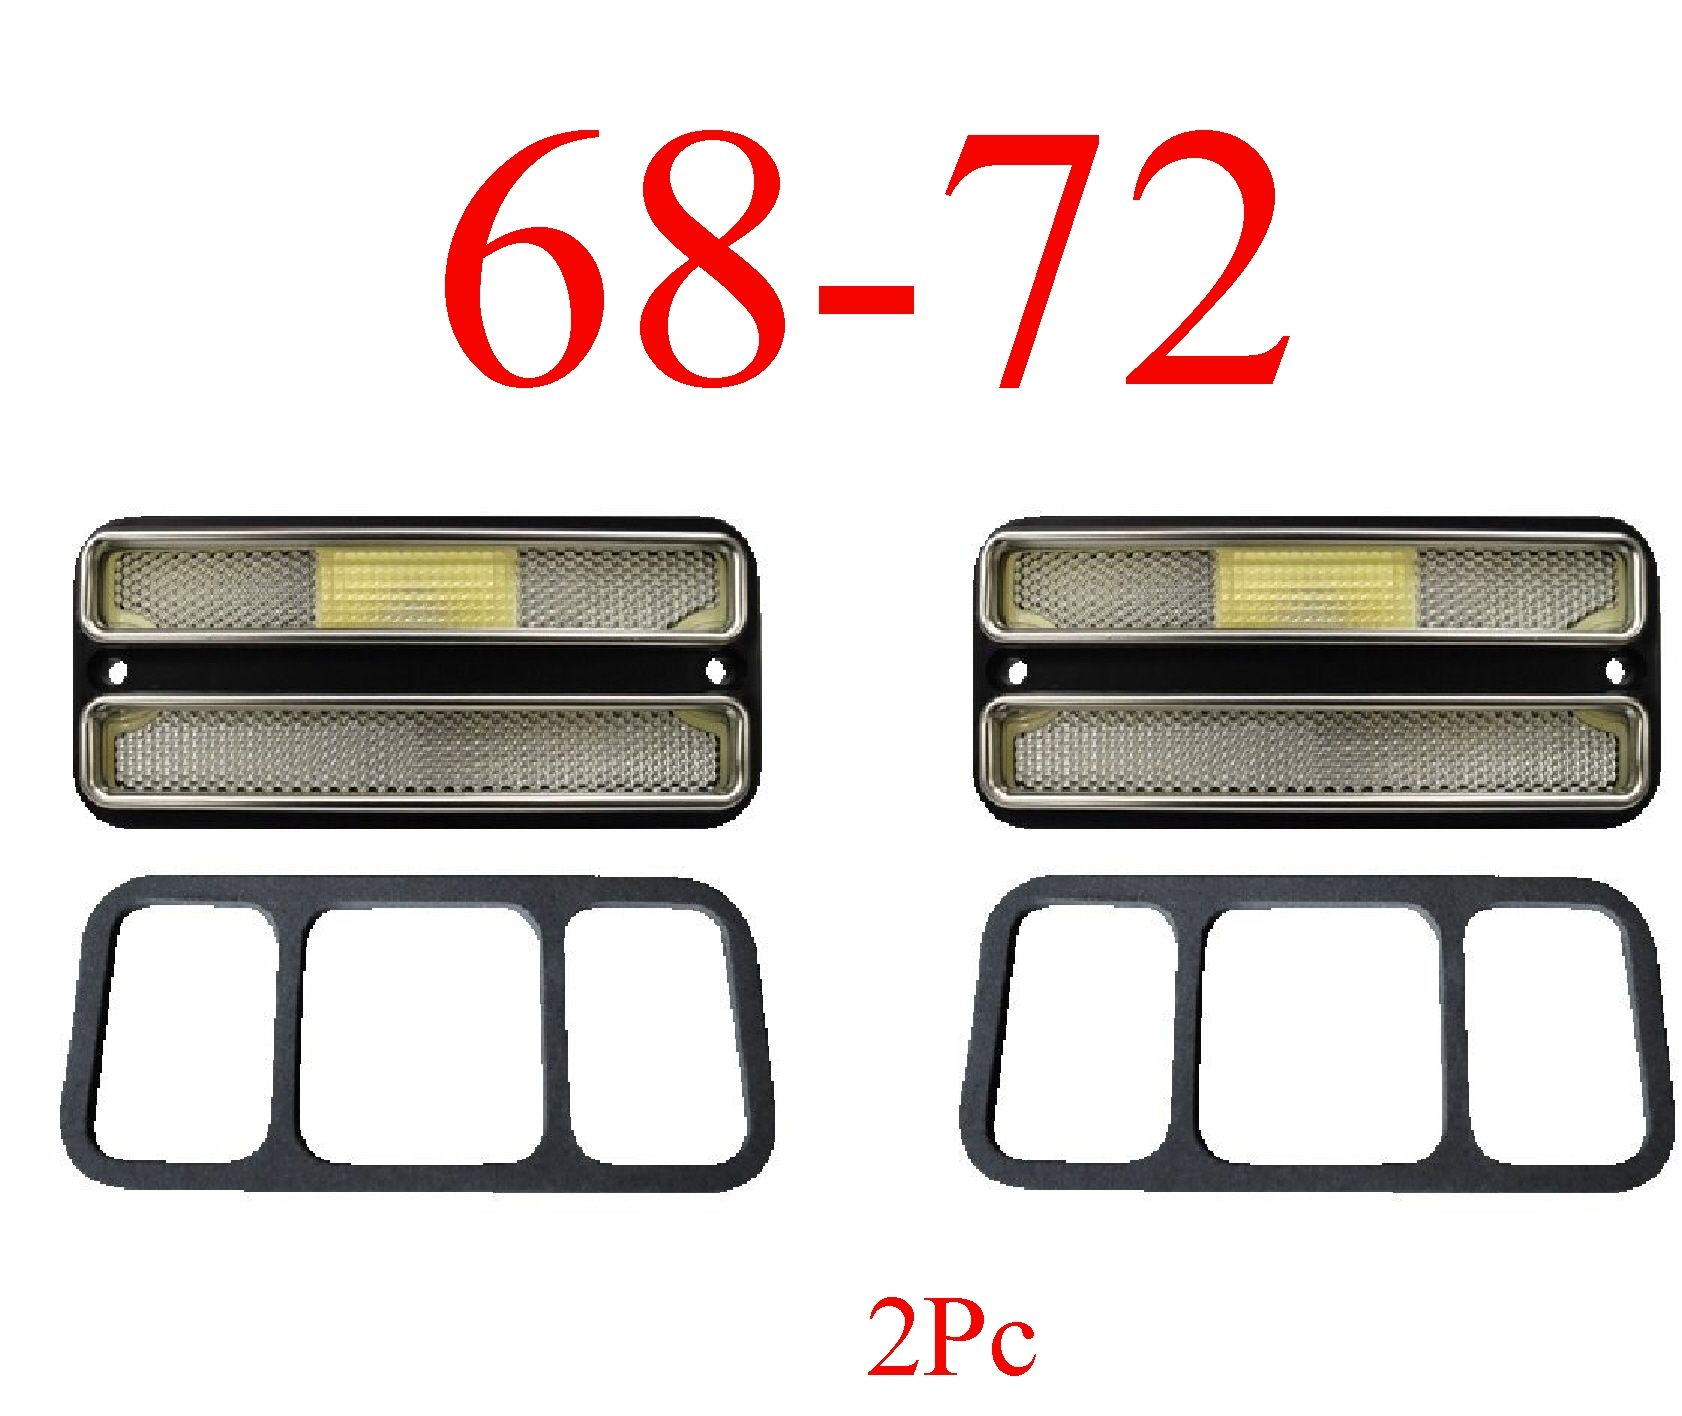 68-72 Chevy 2Pc Clear Front Deluxe Side Lights